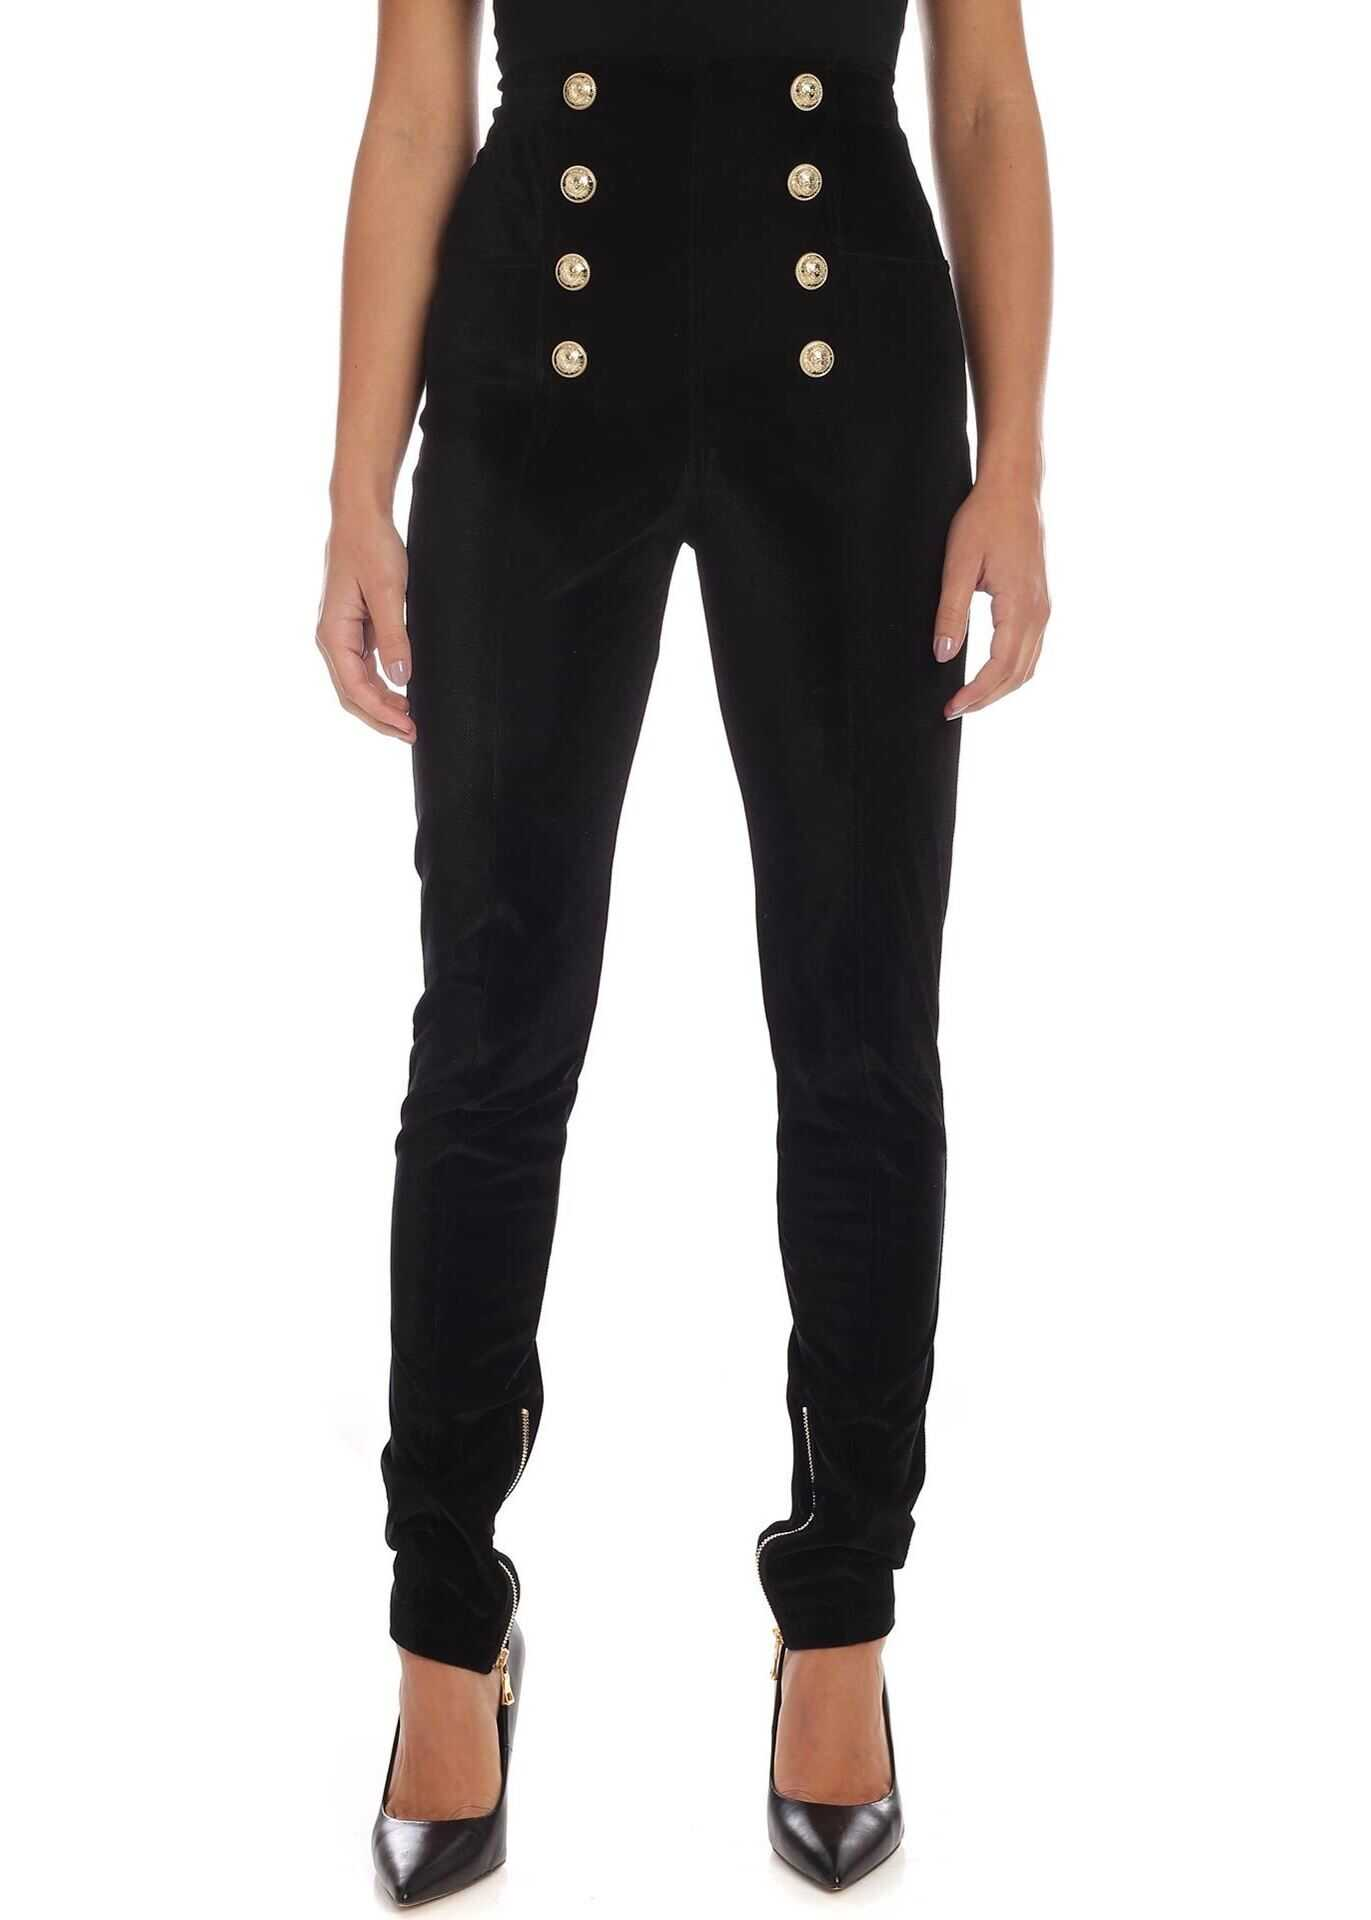 8-Buttons Skinny Pants In Black thumbnail